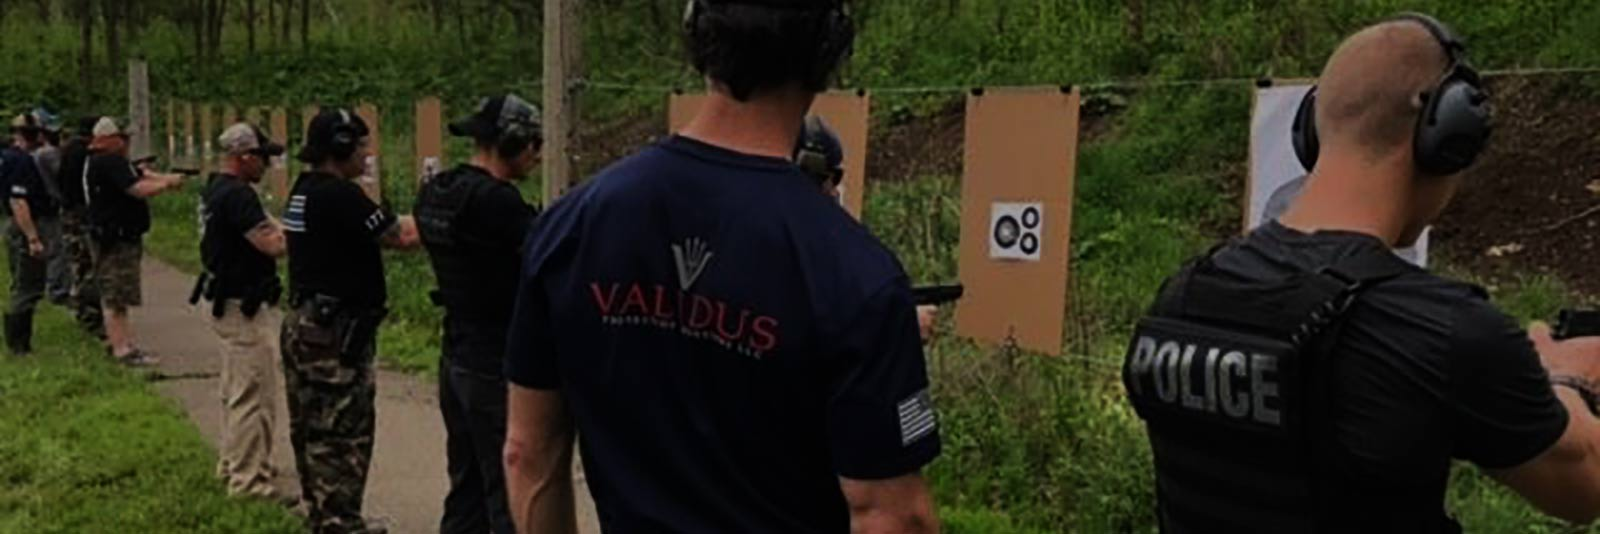 Firearms Training in Ohio for Civilians, Law Enforcement & Military